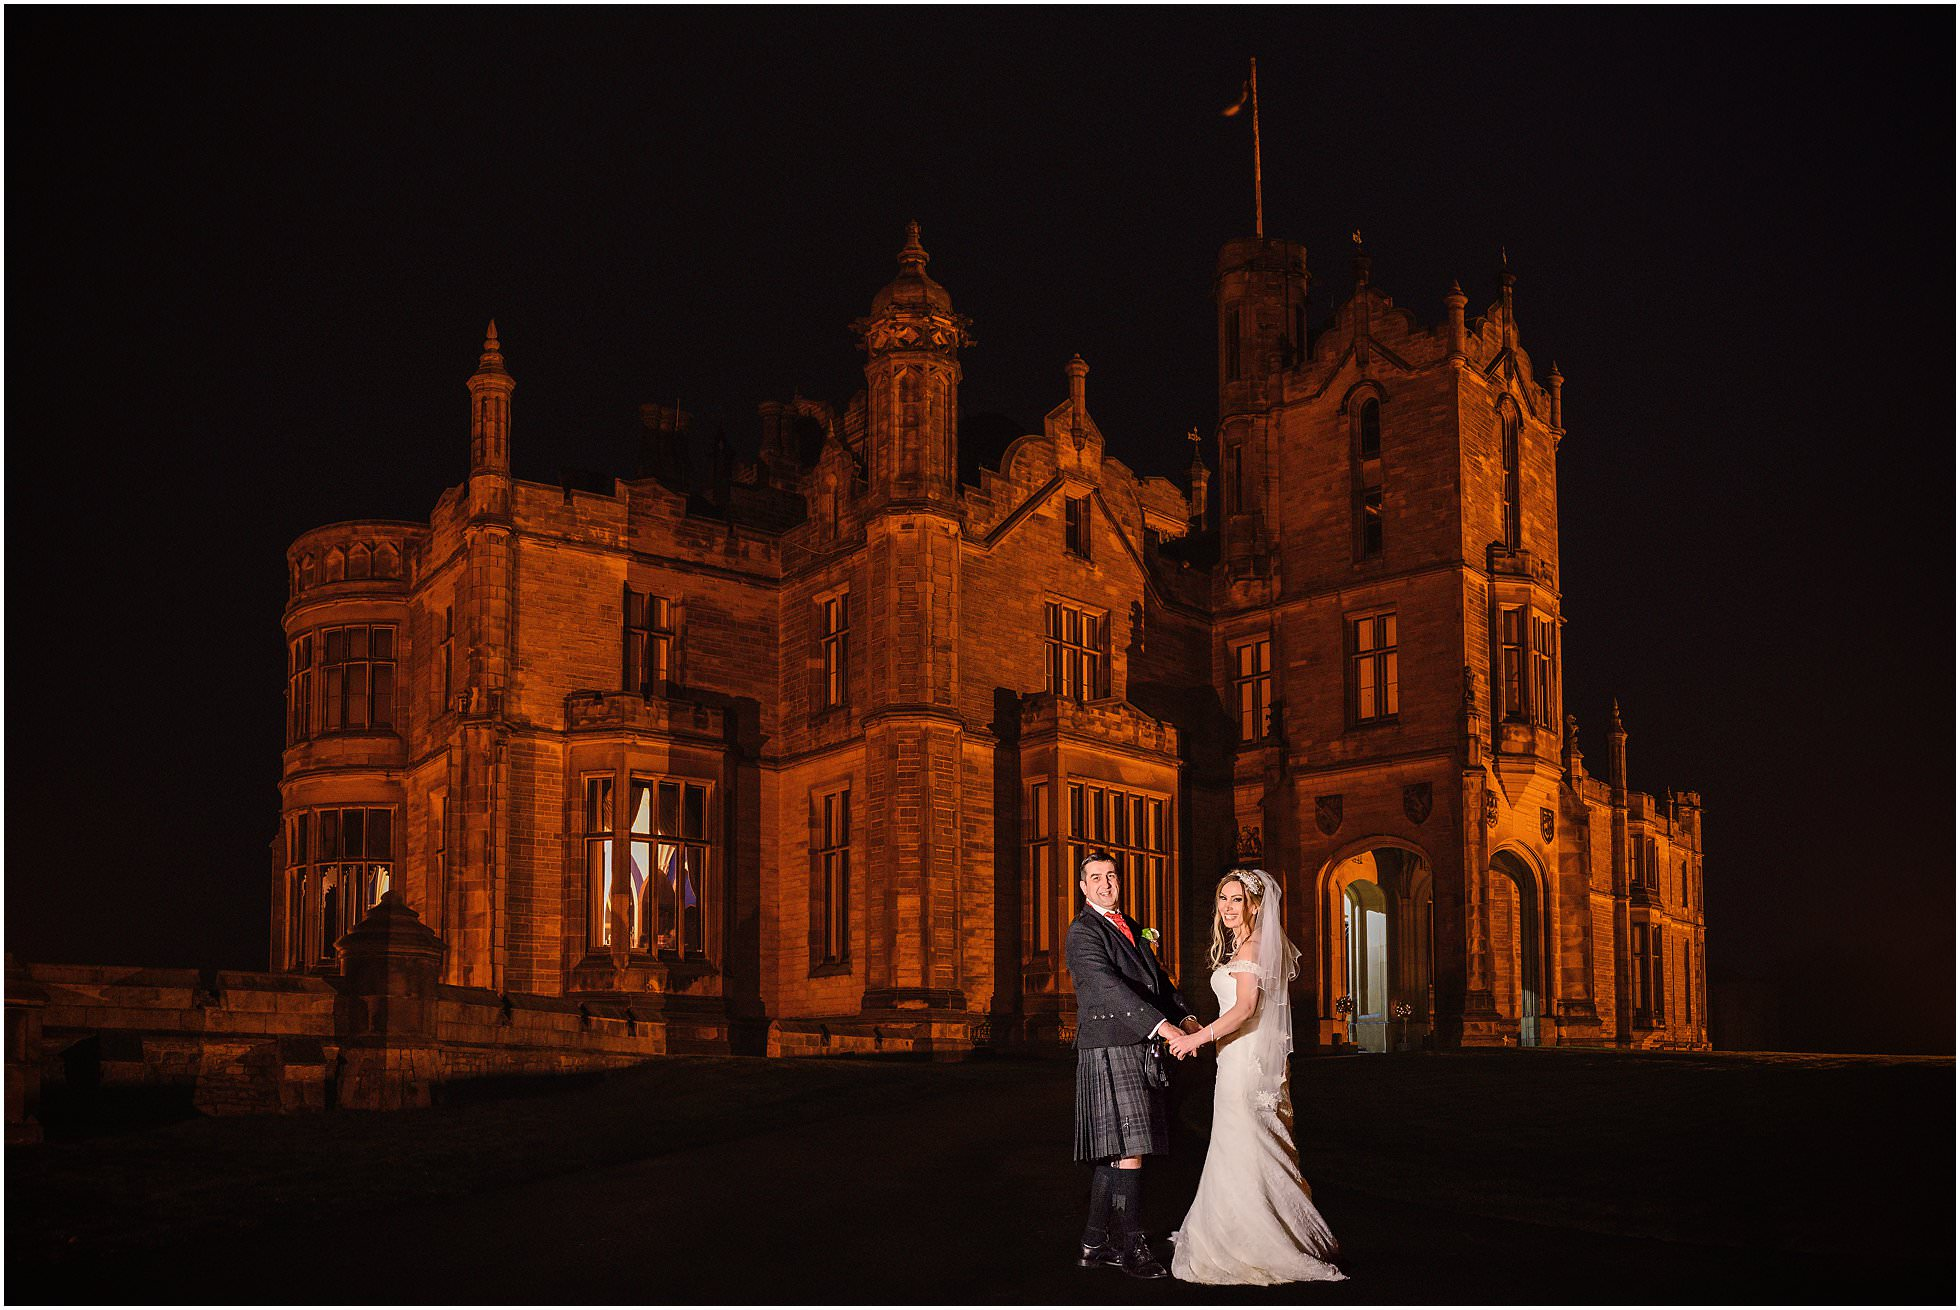 Allerton Castle Wedding Photographer shot of the castle at night-time